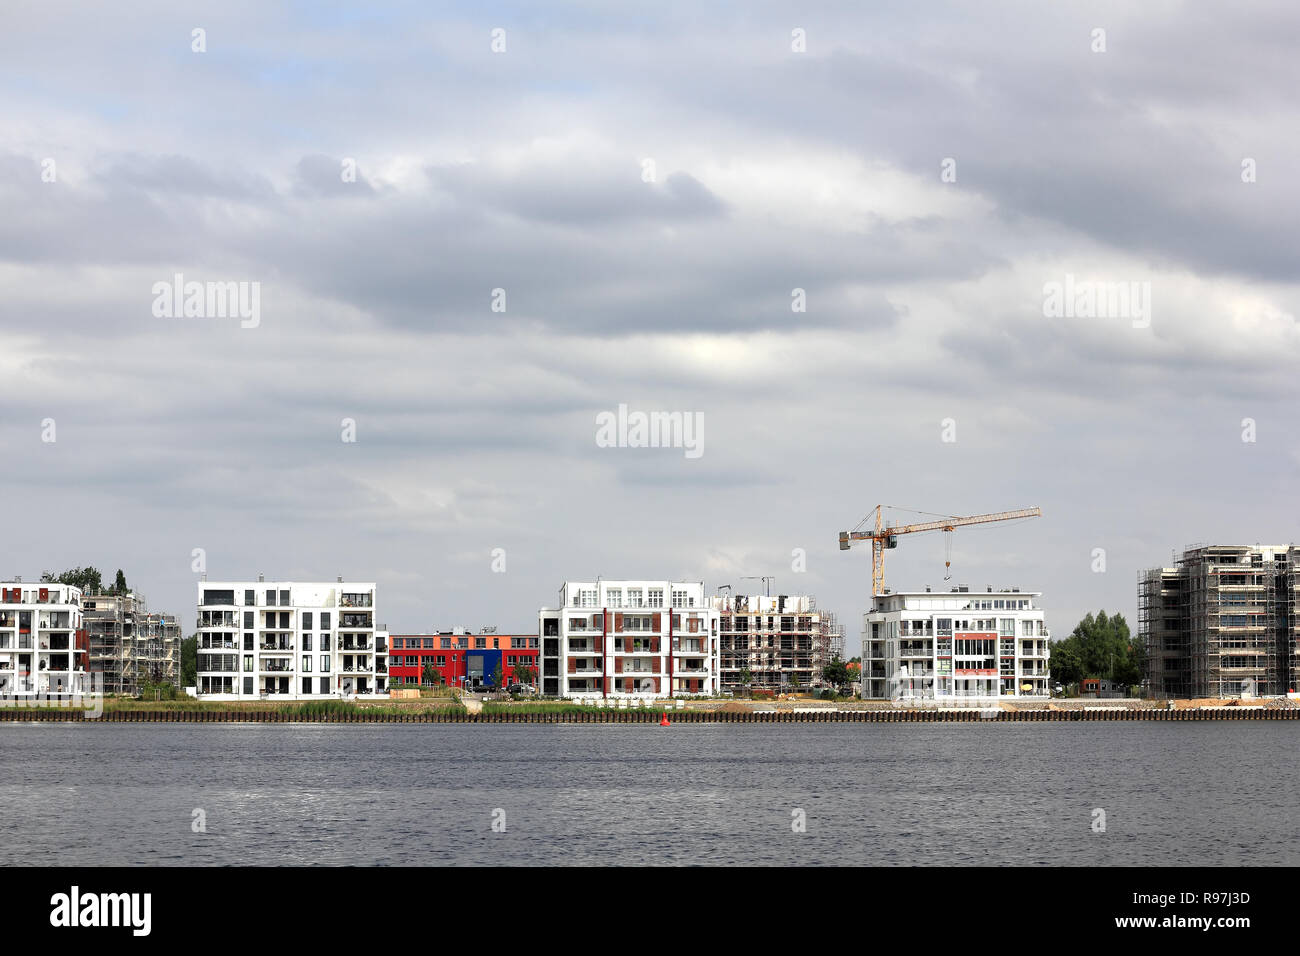 Urban villas at the inner Ziegelsee in Schwerin - Stock Image